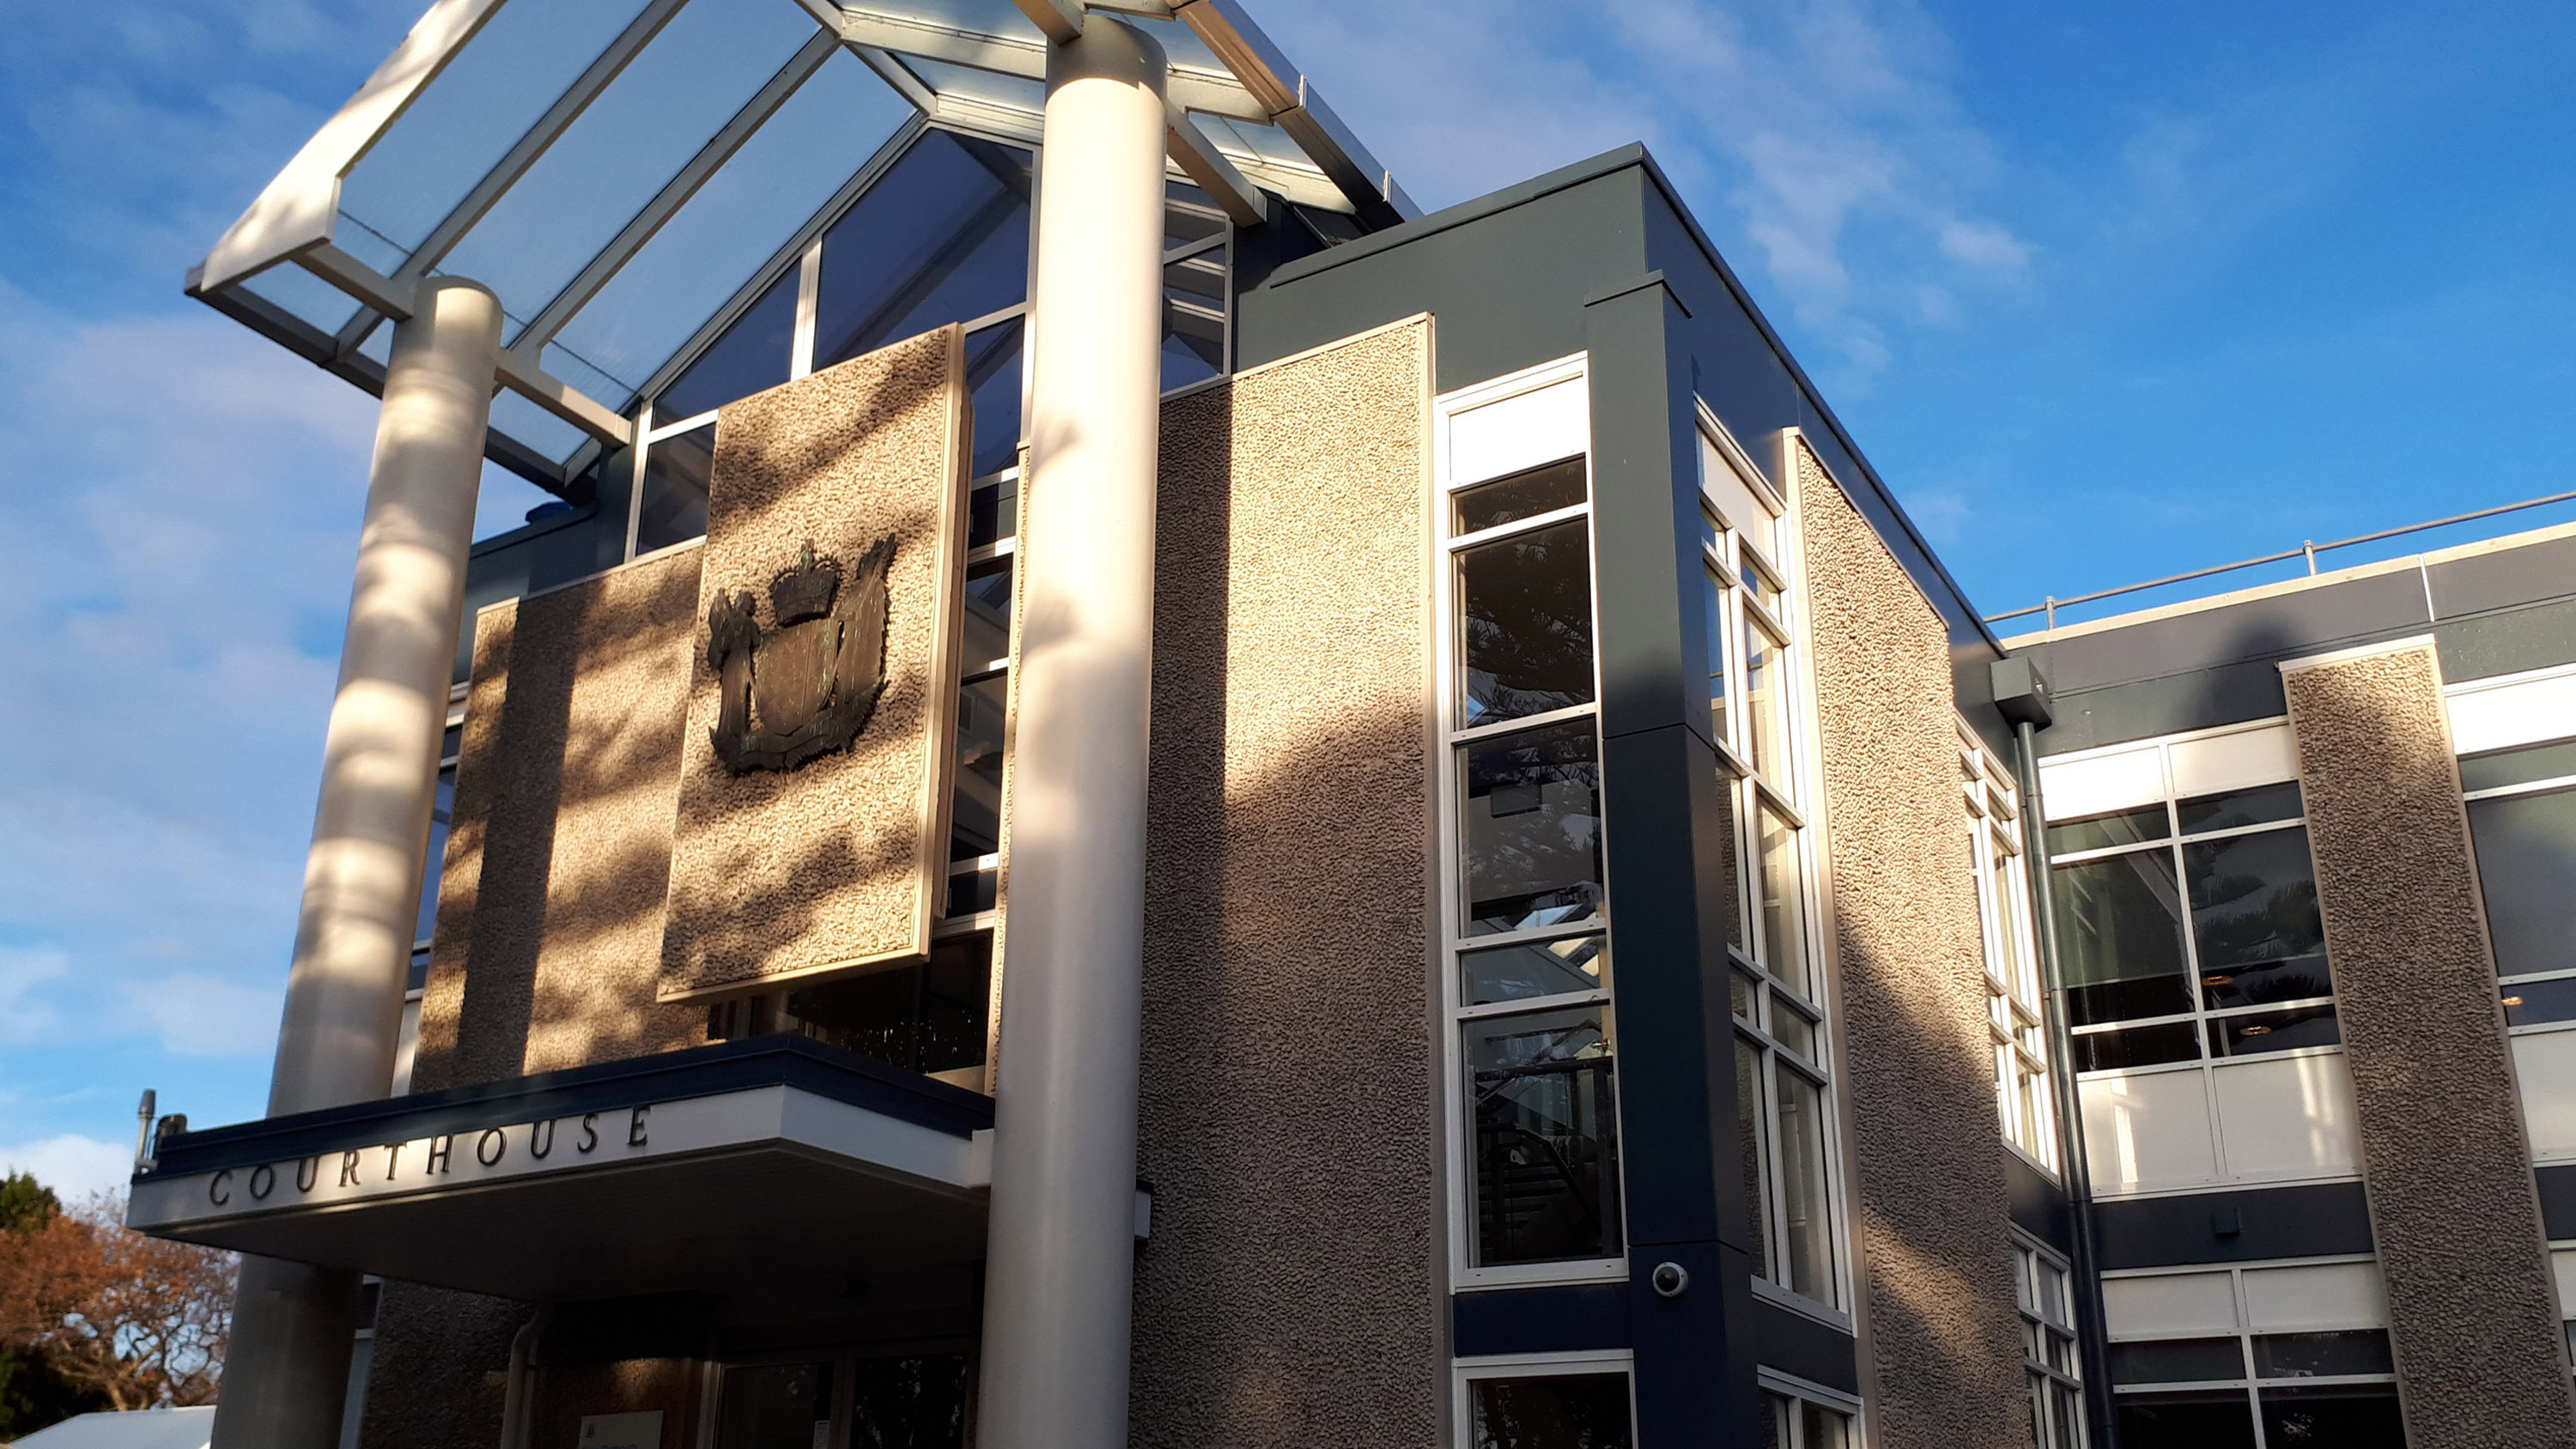 New Plymouth District Court